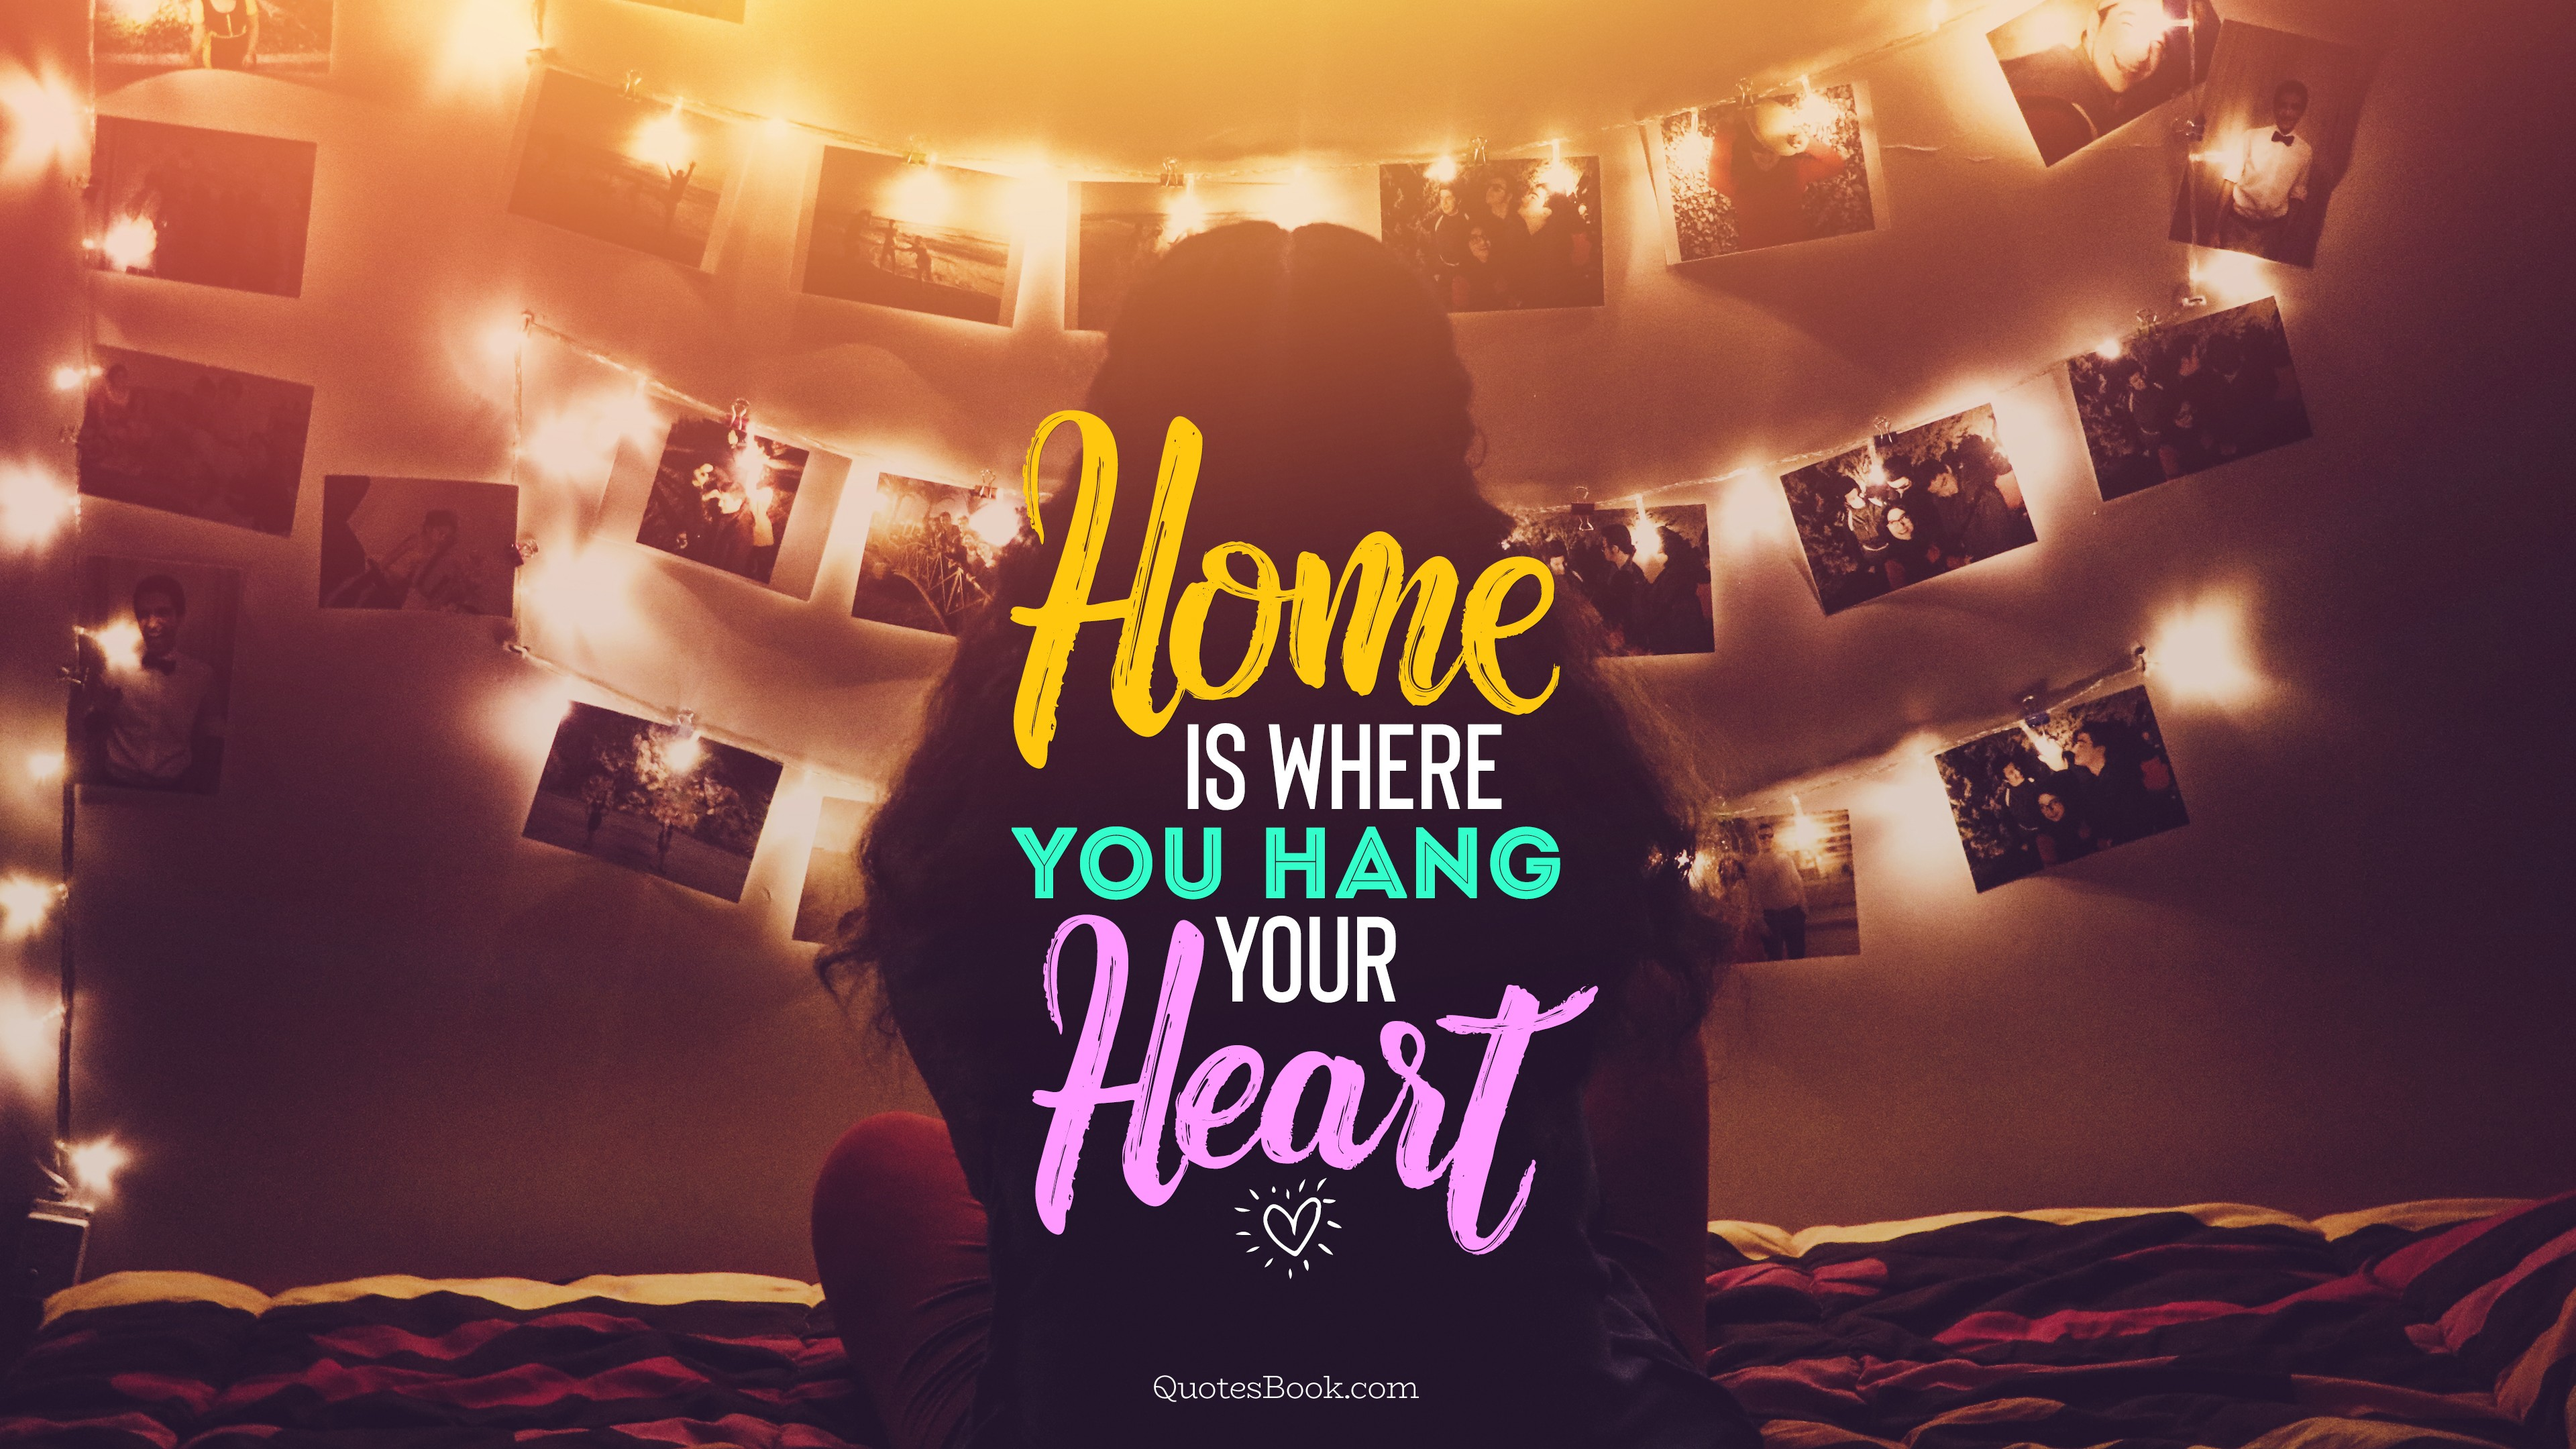 Home Is Where You Hang Your Heart Quotesbook